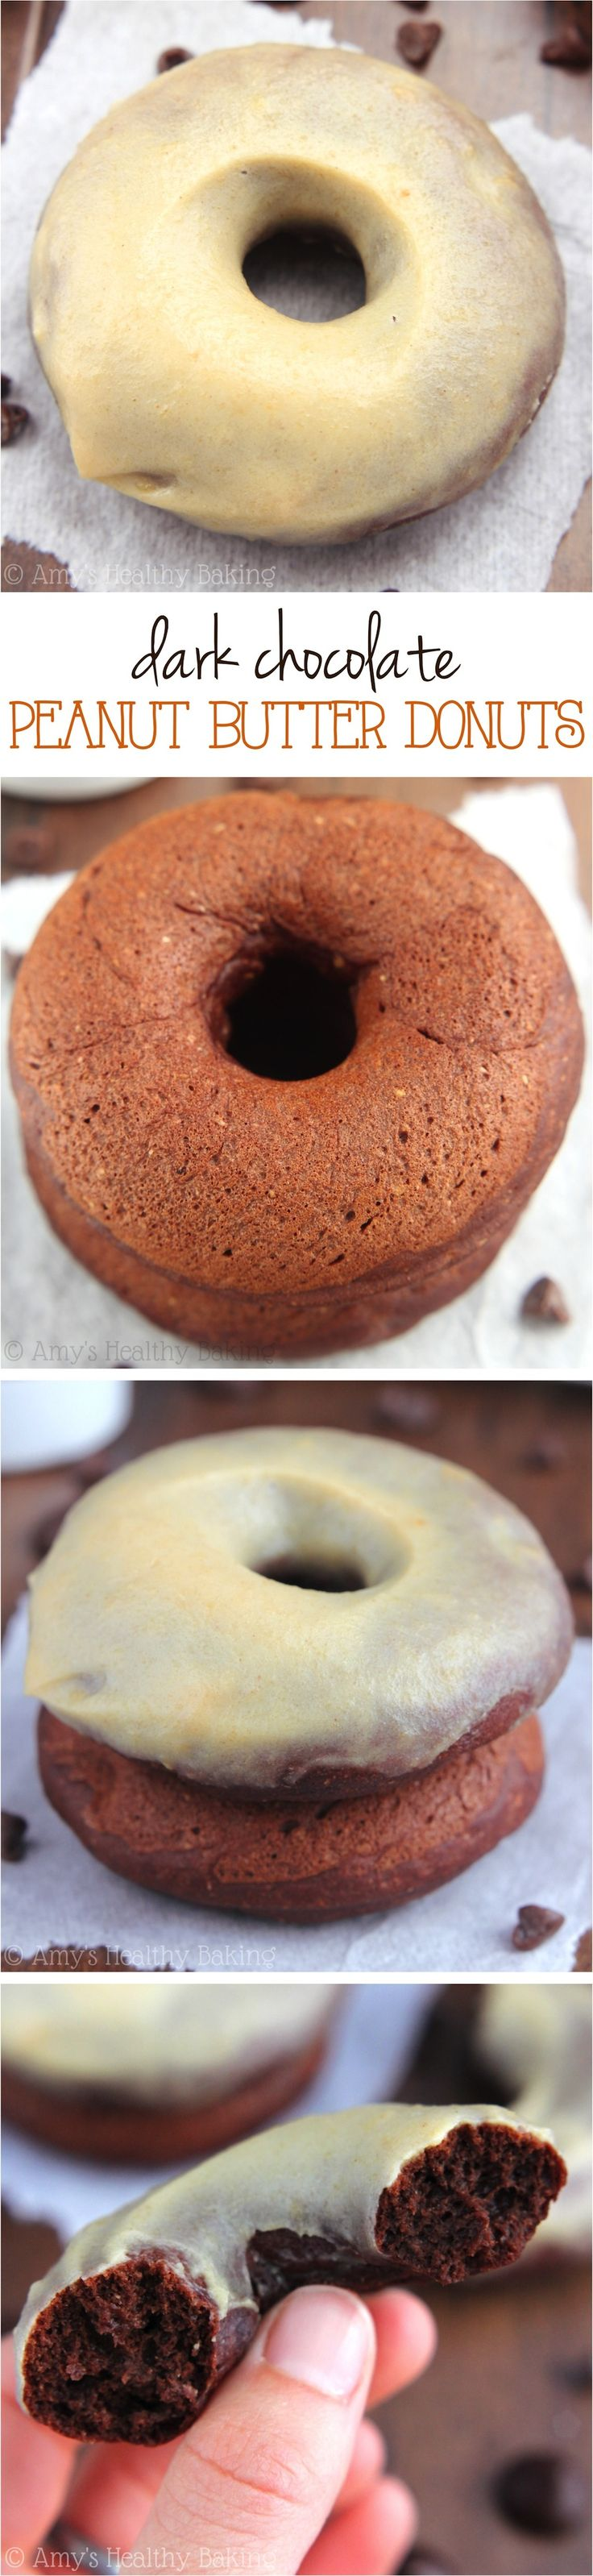 Dark Chocolate Peanut Butter Donuts -- they taste like cupcakes crossed with Reese's PB cups! Baked, not fried & only  86 calories!